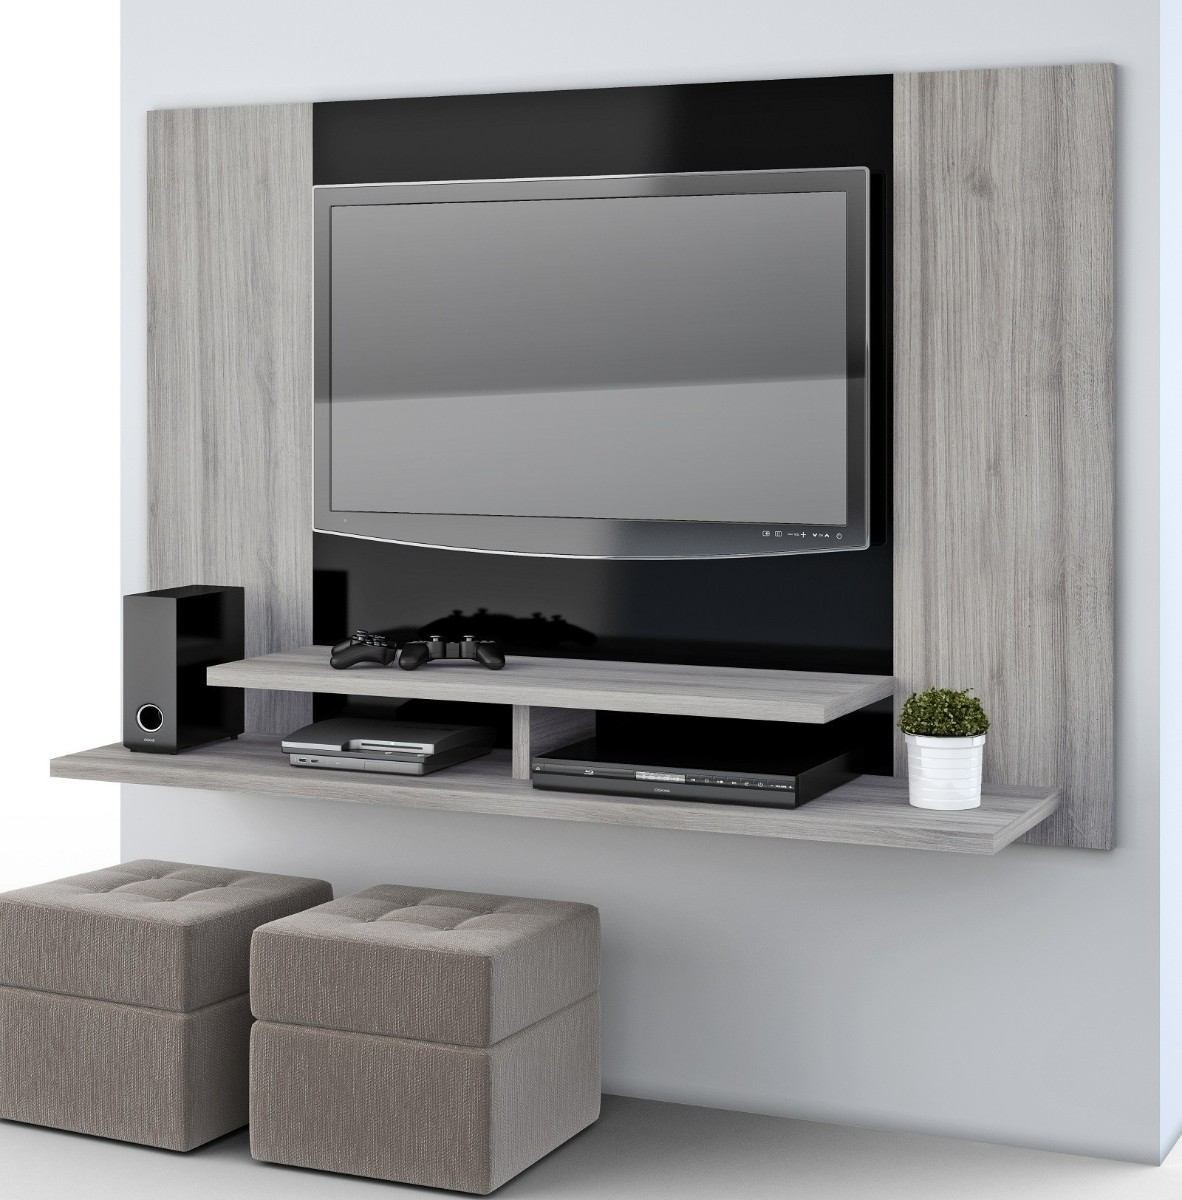 mueble para tv moderno ref manhatan en mercado